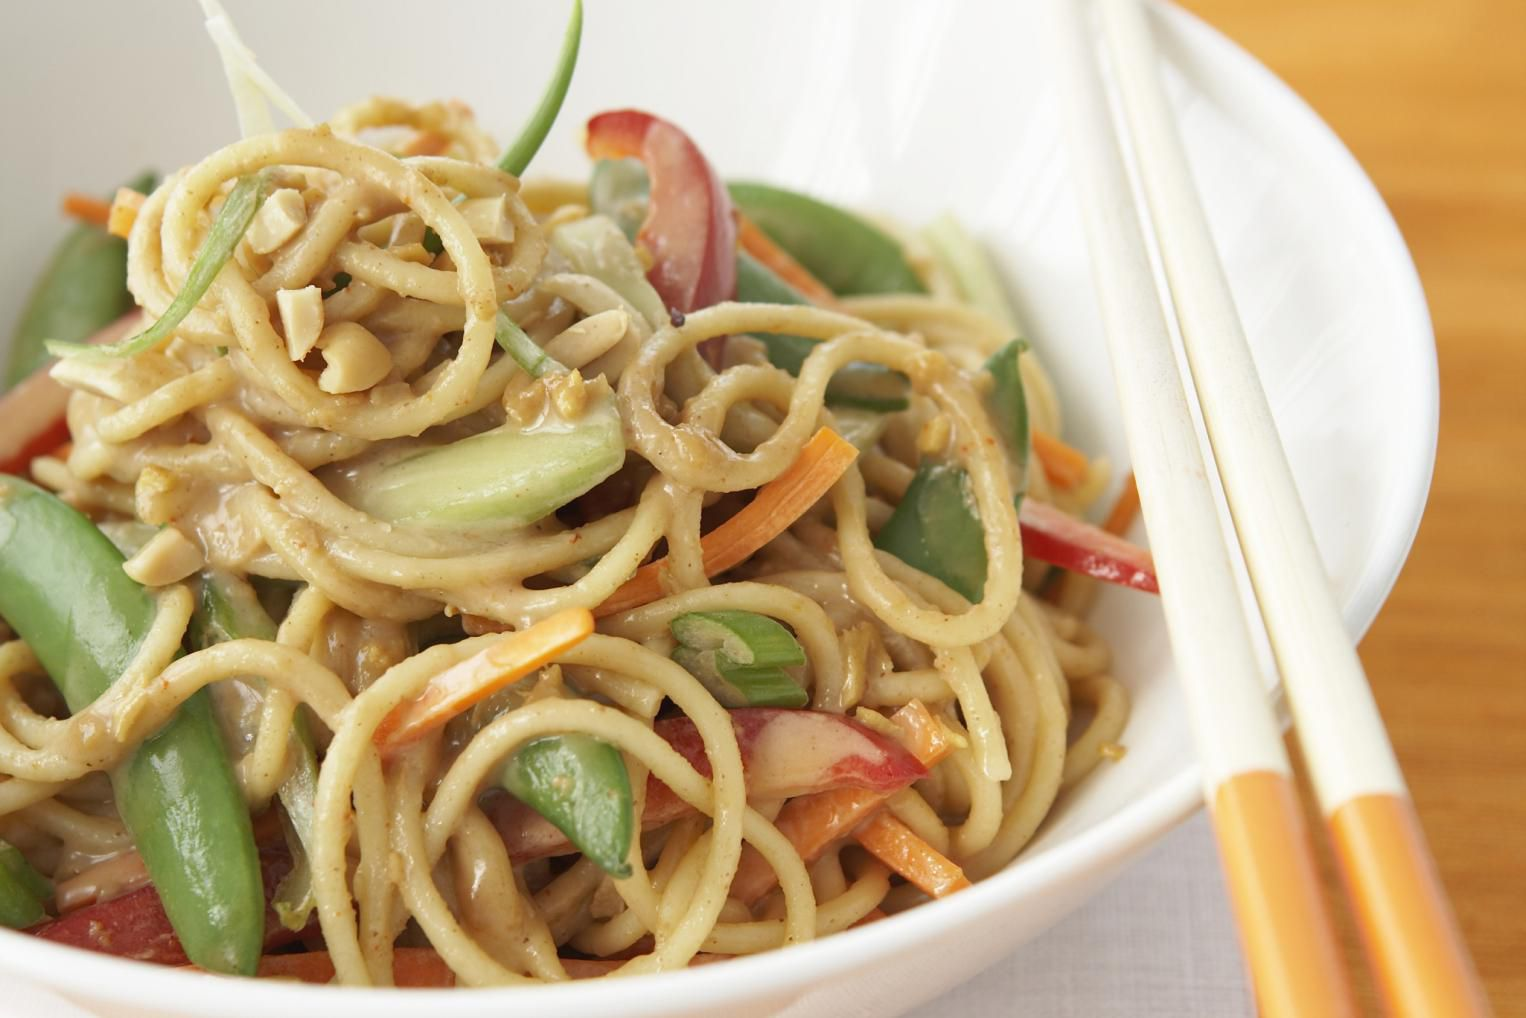 Chinese Noodles In Peanut Sauce Recipe With Sesame Paste-9792